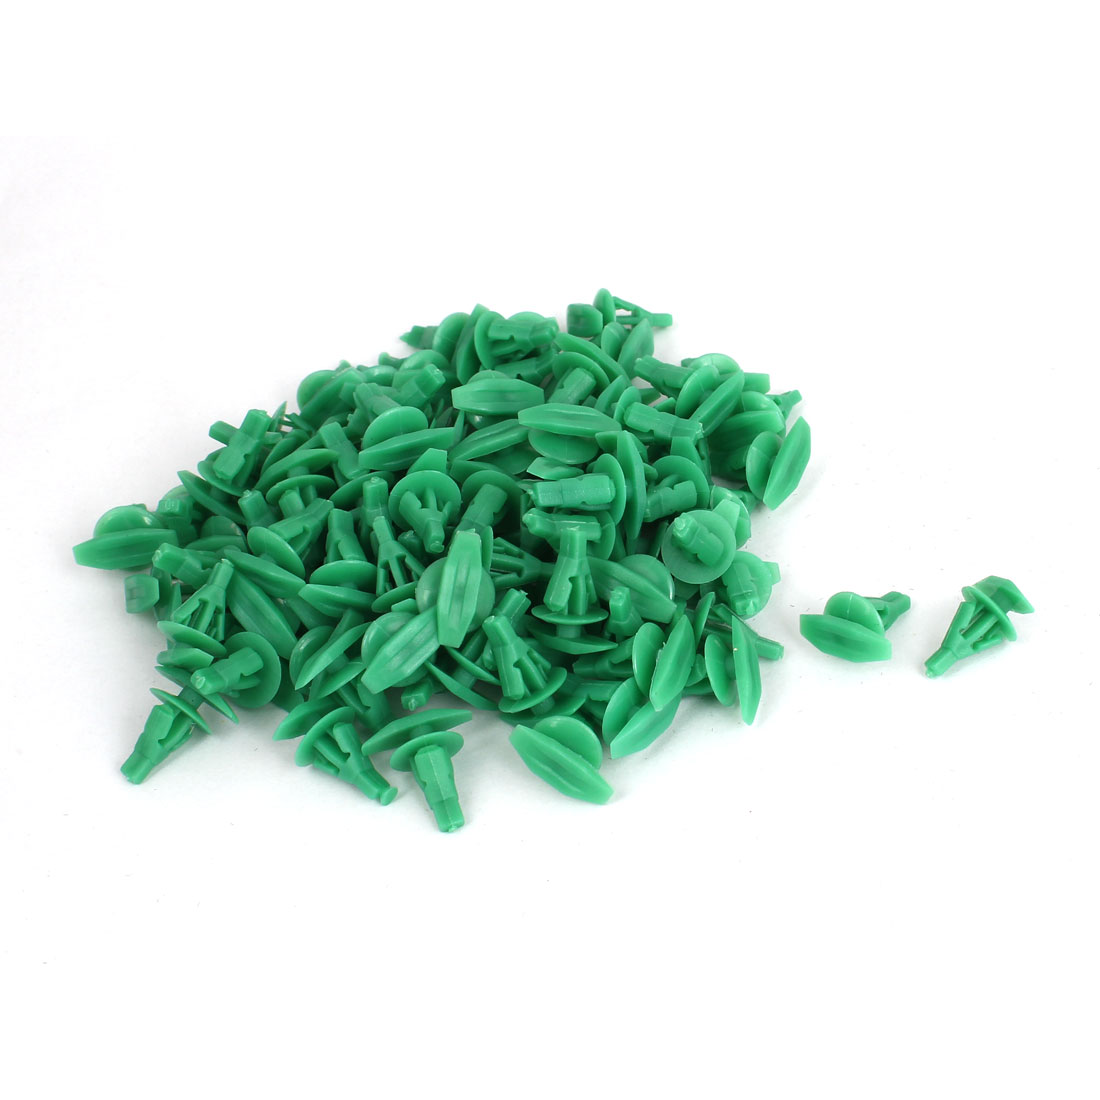 Unique Bargains 100 Pcs Green Plastic Rivet Trim Fastener Moulding Clips 7mm x 9mm x 11mm